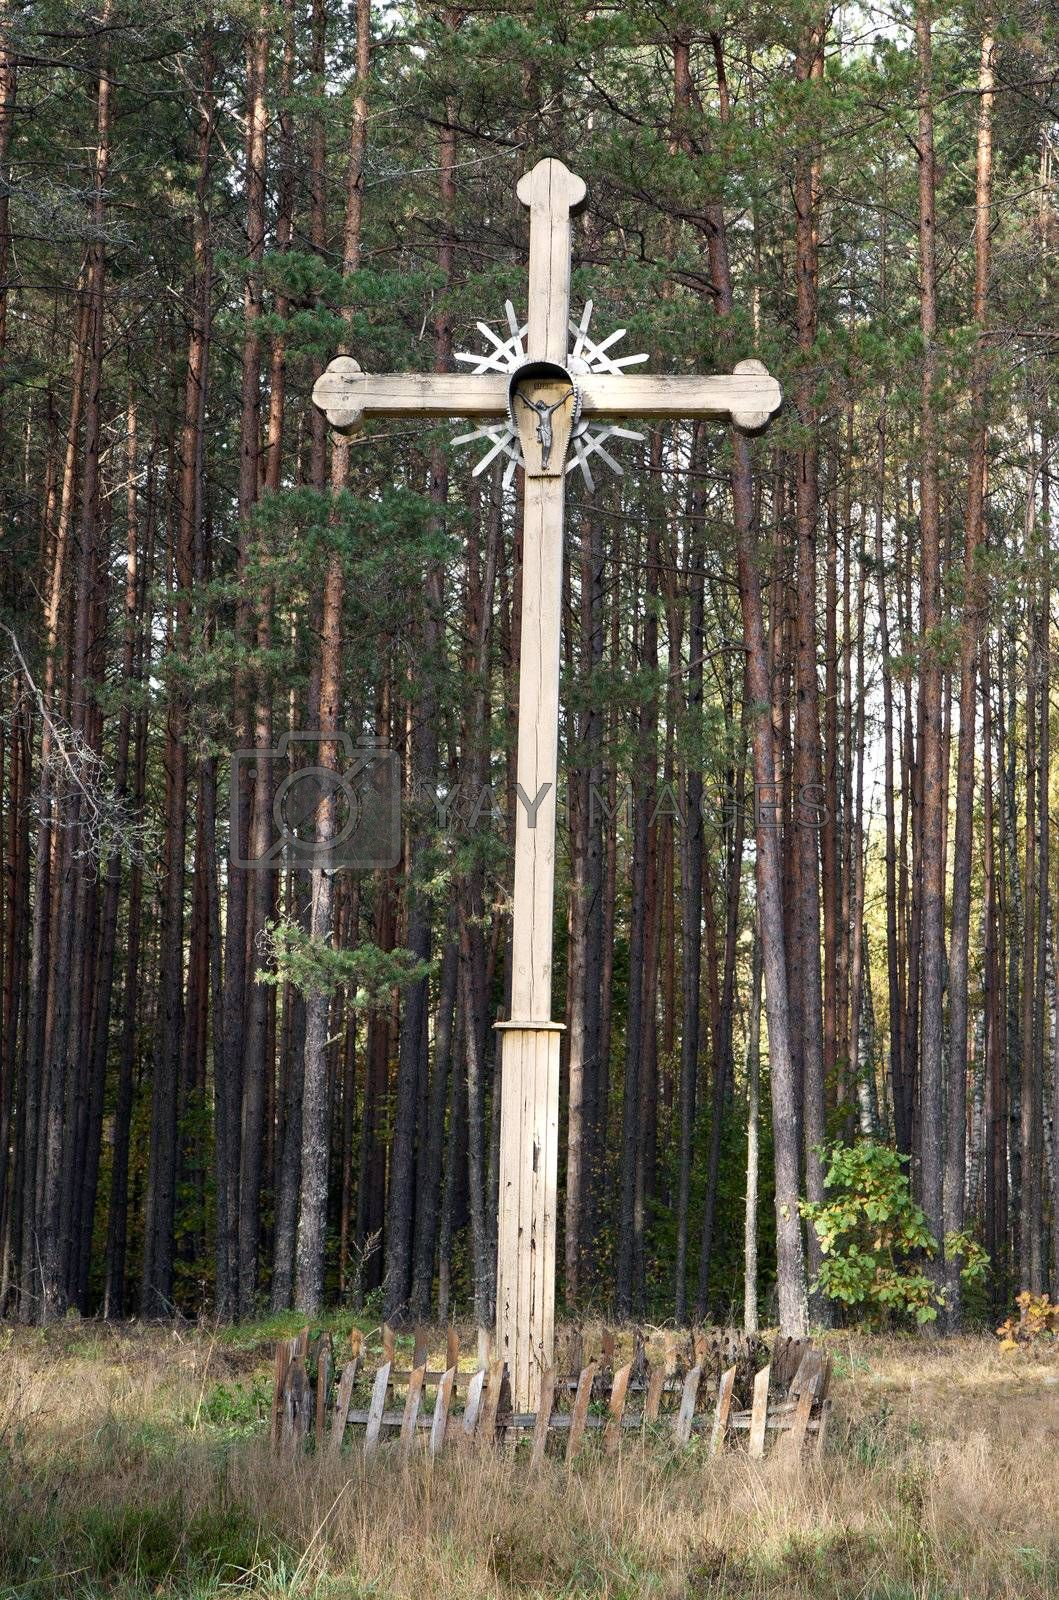 Old wooden abandoned cross in the middle of the woods